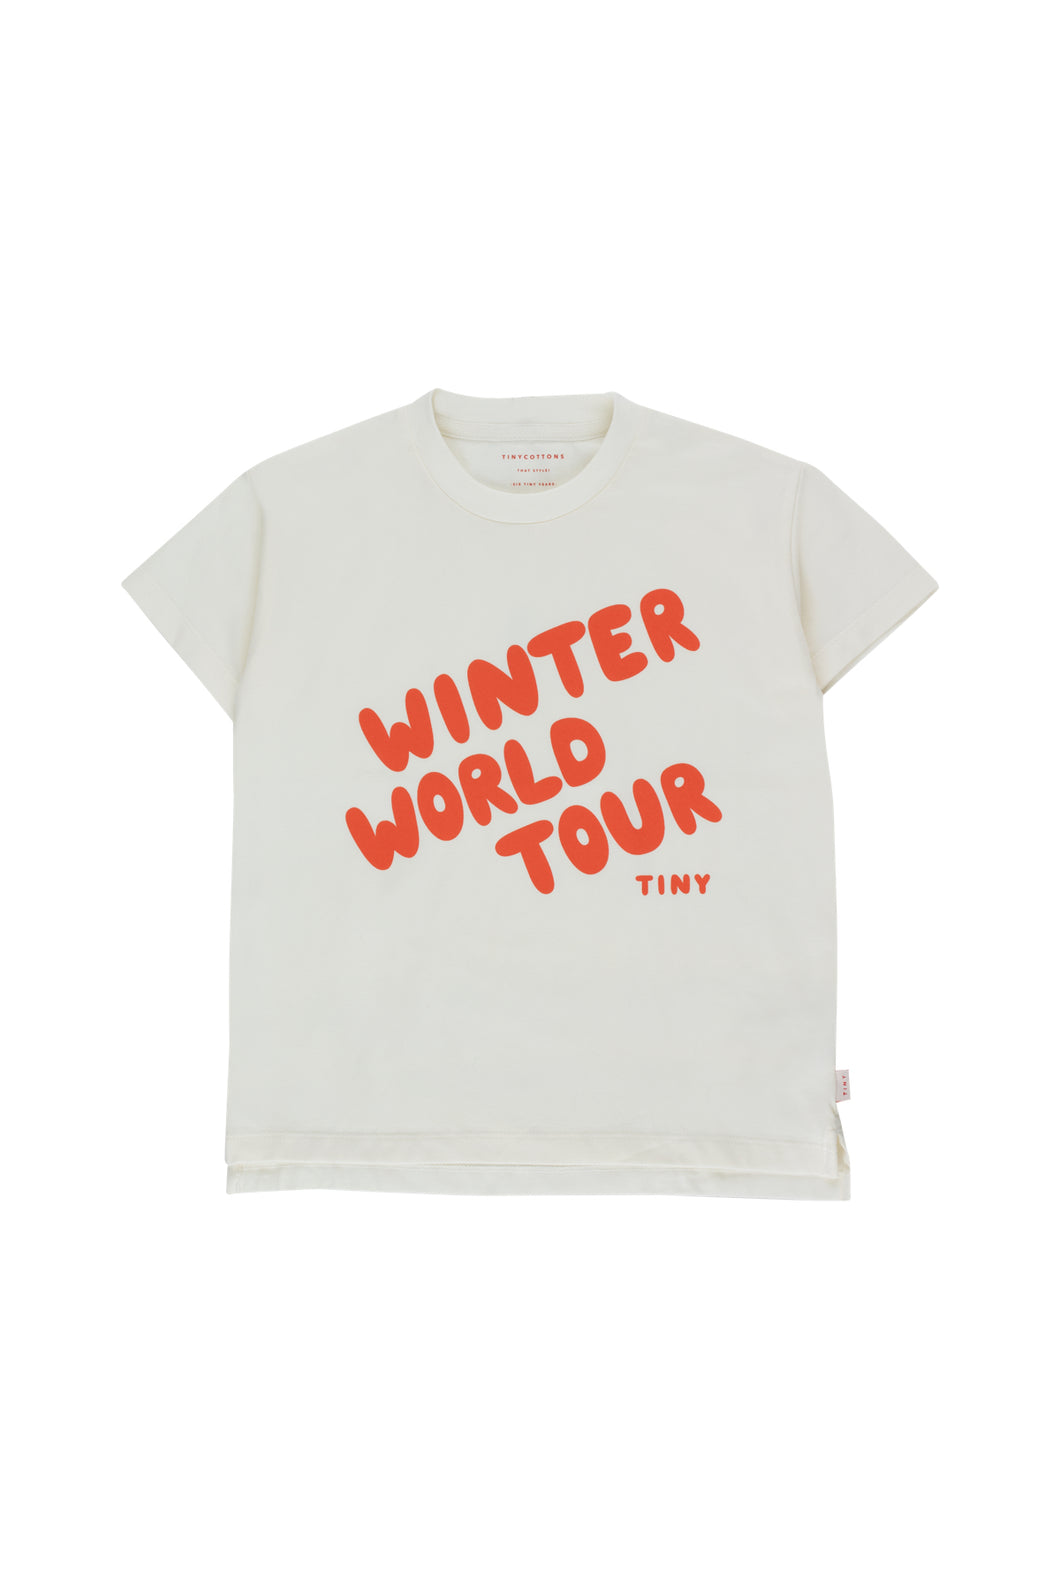 "Tiny Cottons ""WINTER WORLD TOUR"" TEE"